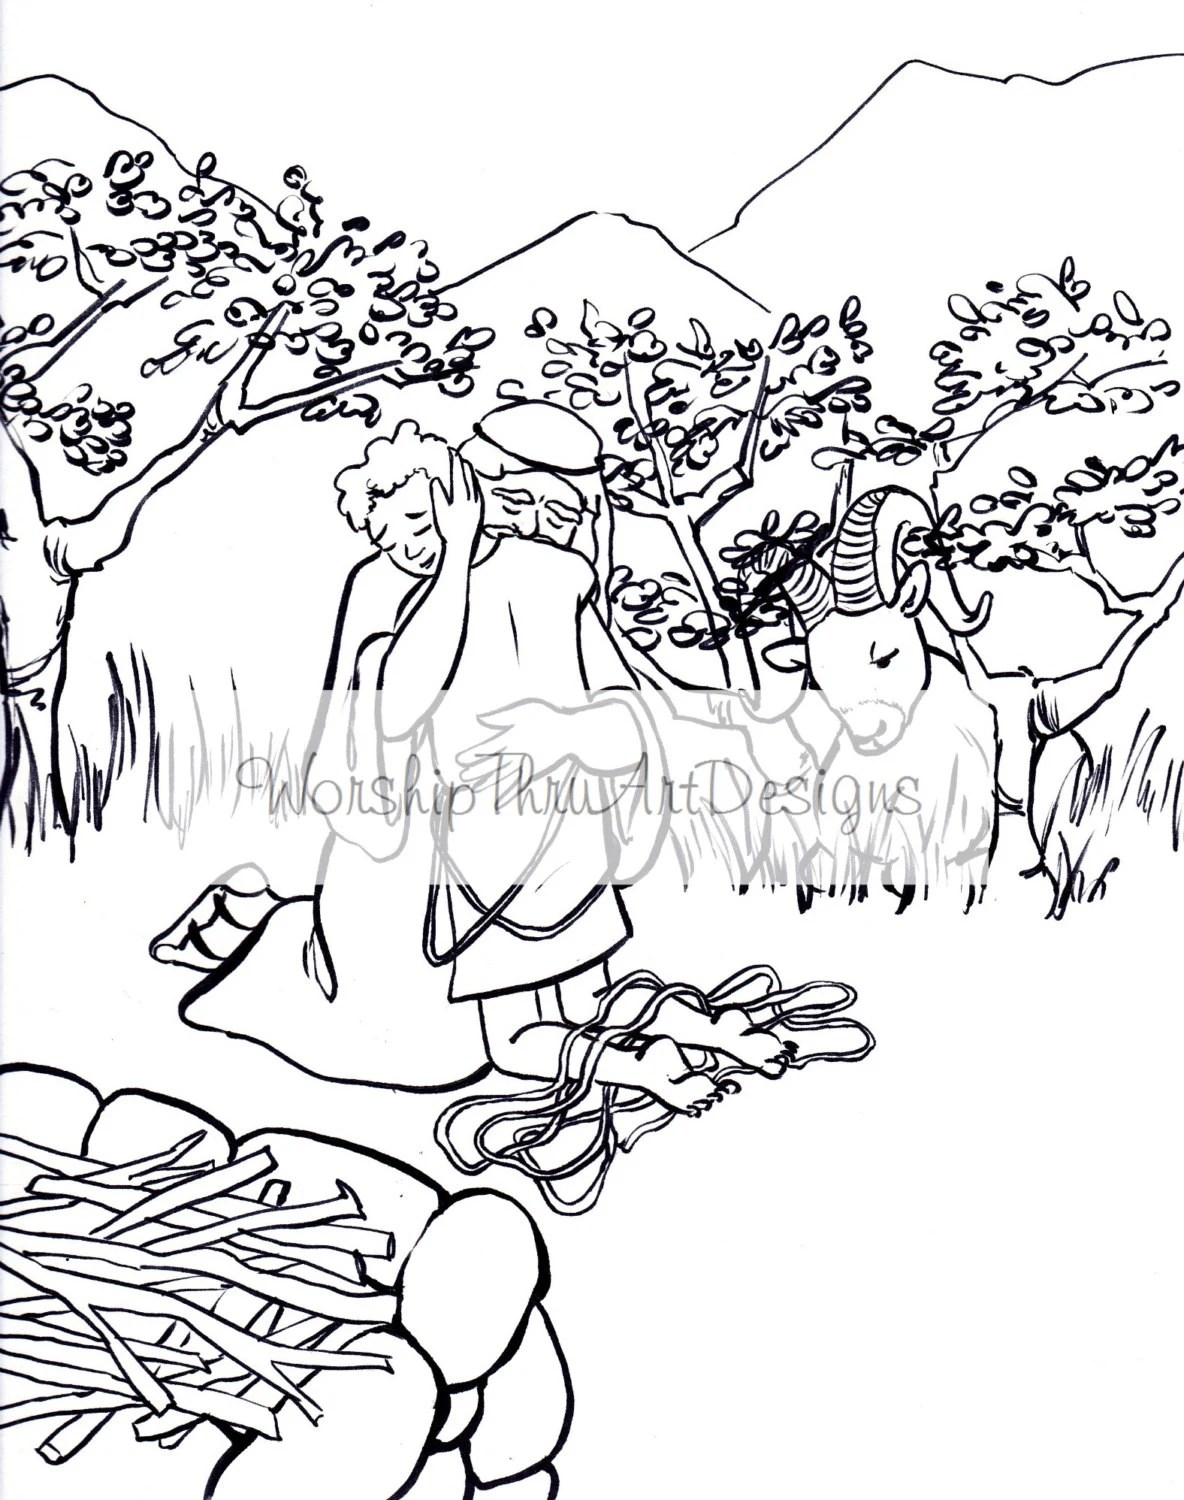 Printable Coloring Page Abraham and Isaac by